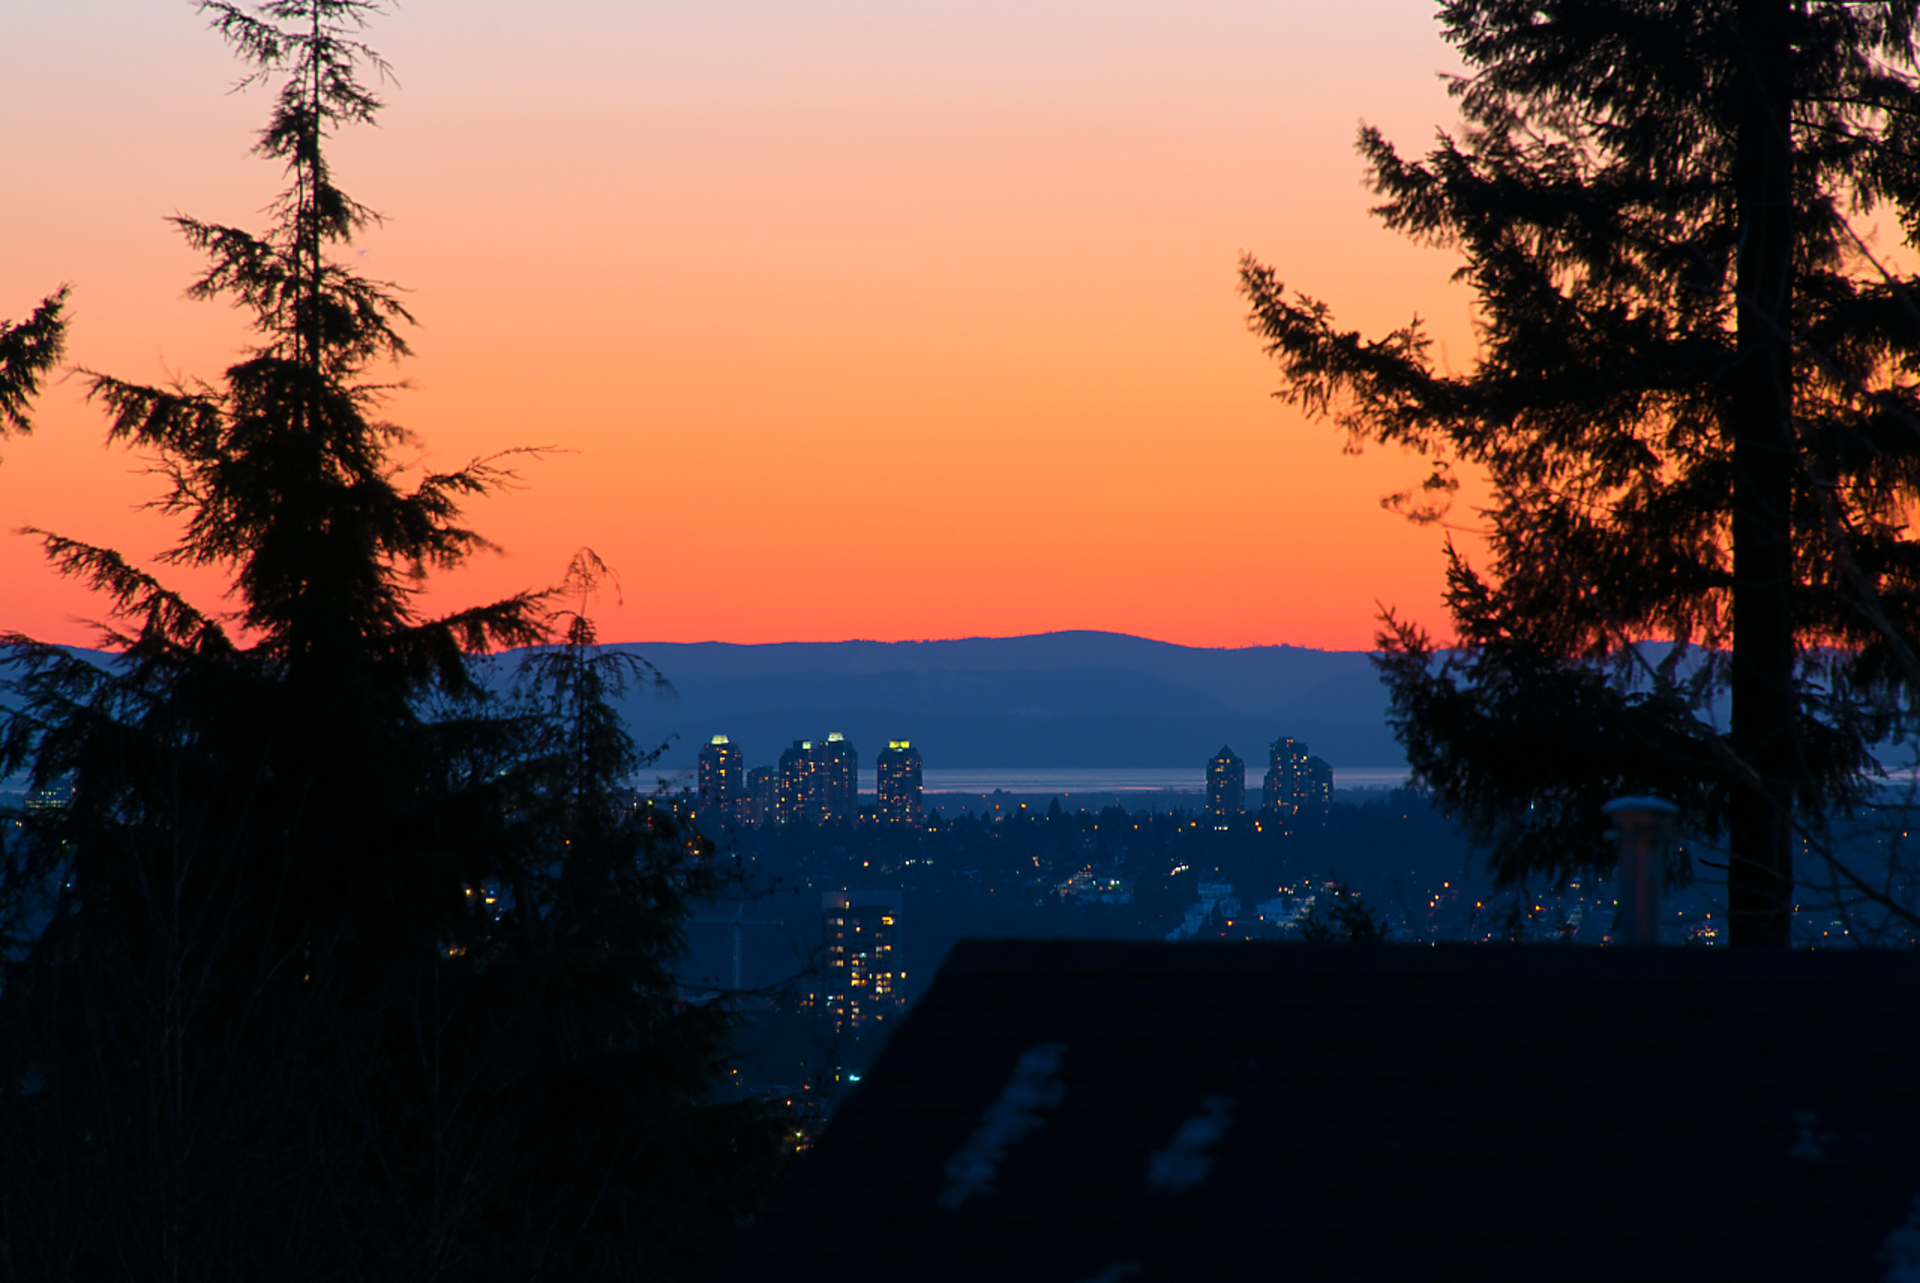 032c at 19 Hawthorn Drive, Heritage Woods PM, Port Moody